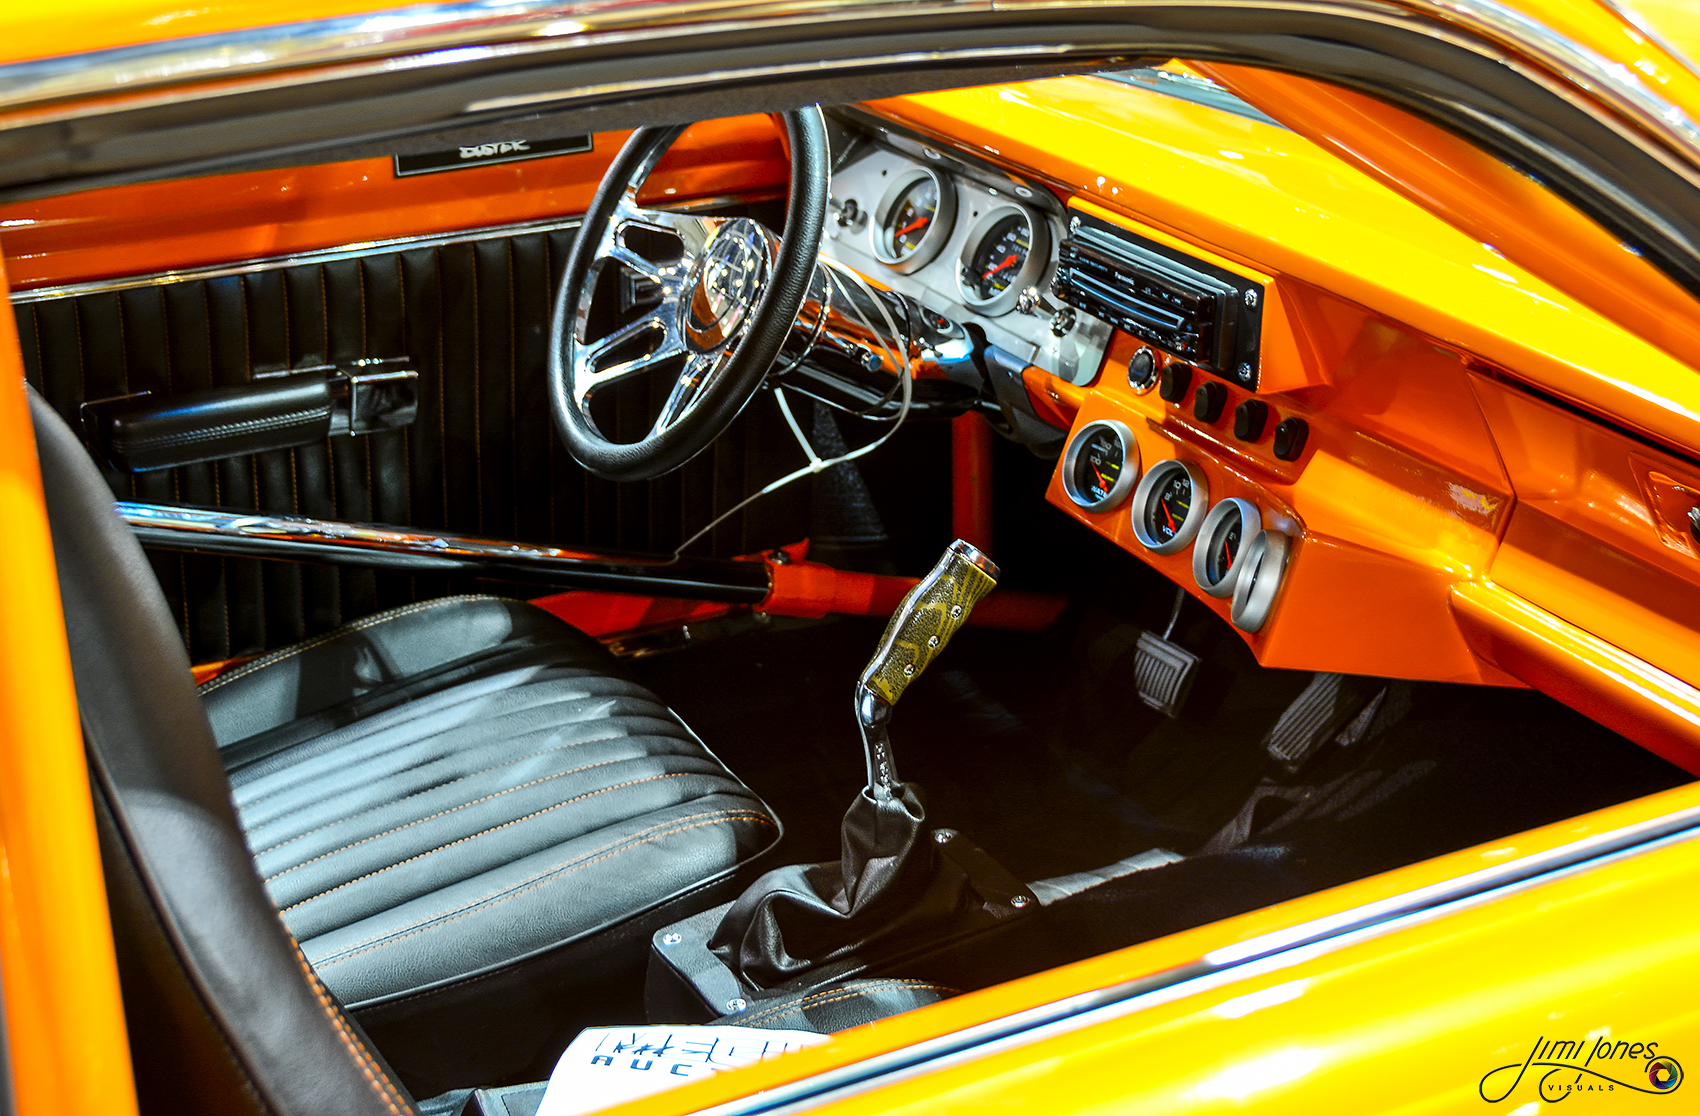 1970 Plymouth Duster - Interior